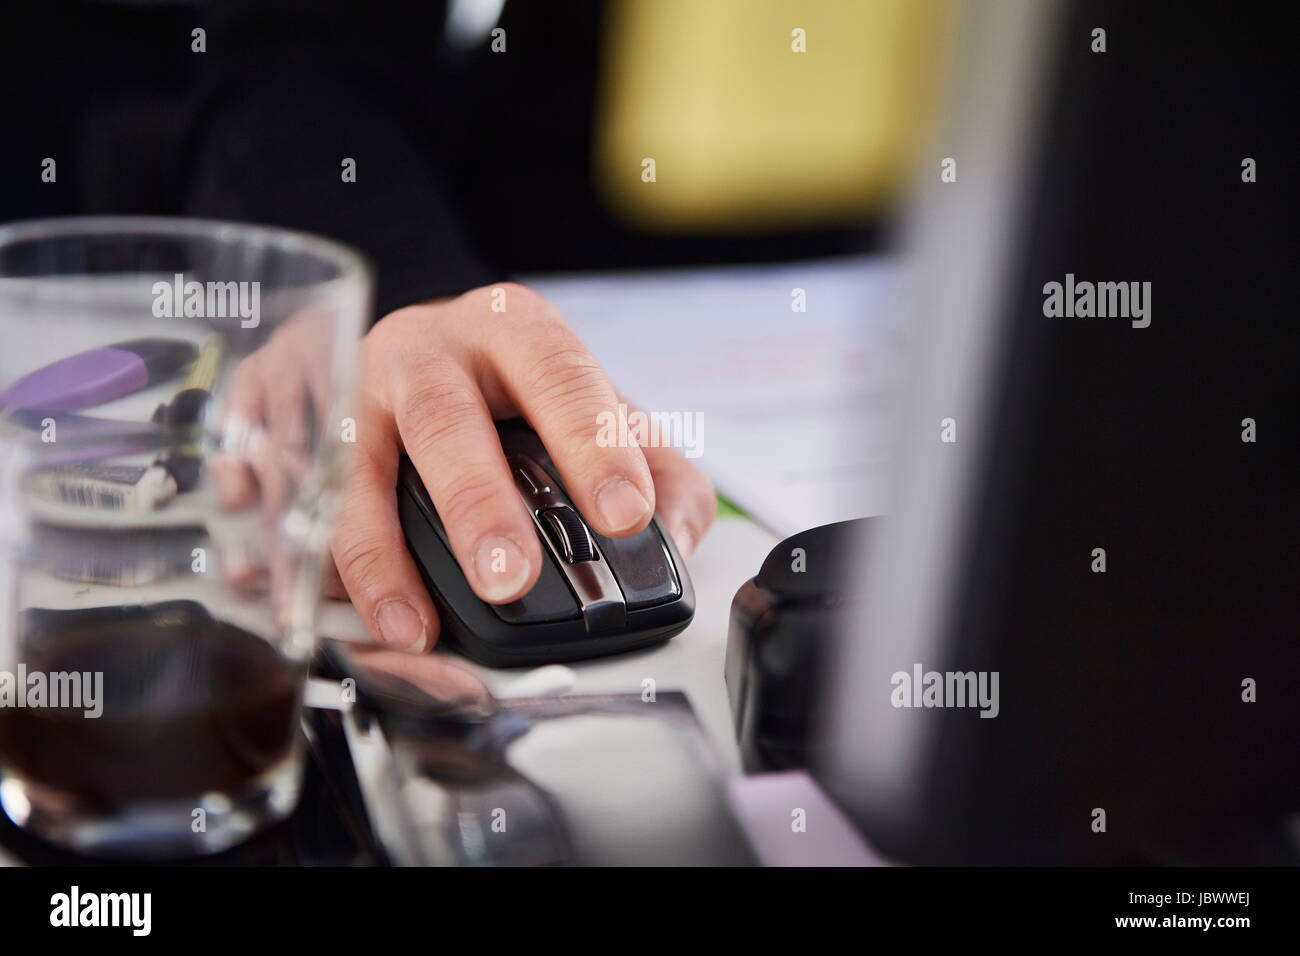 Cropped view of woman using computer mouse - Stock Image